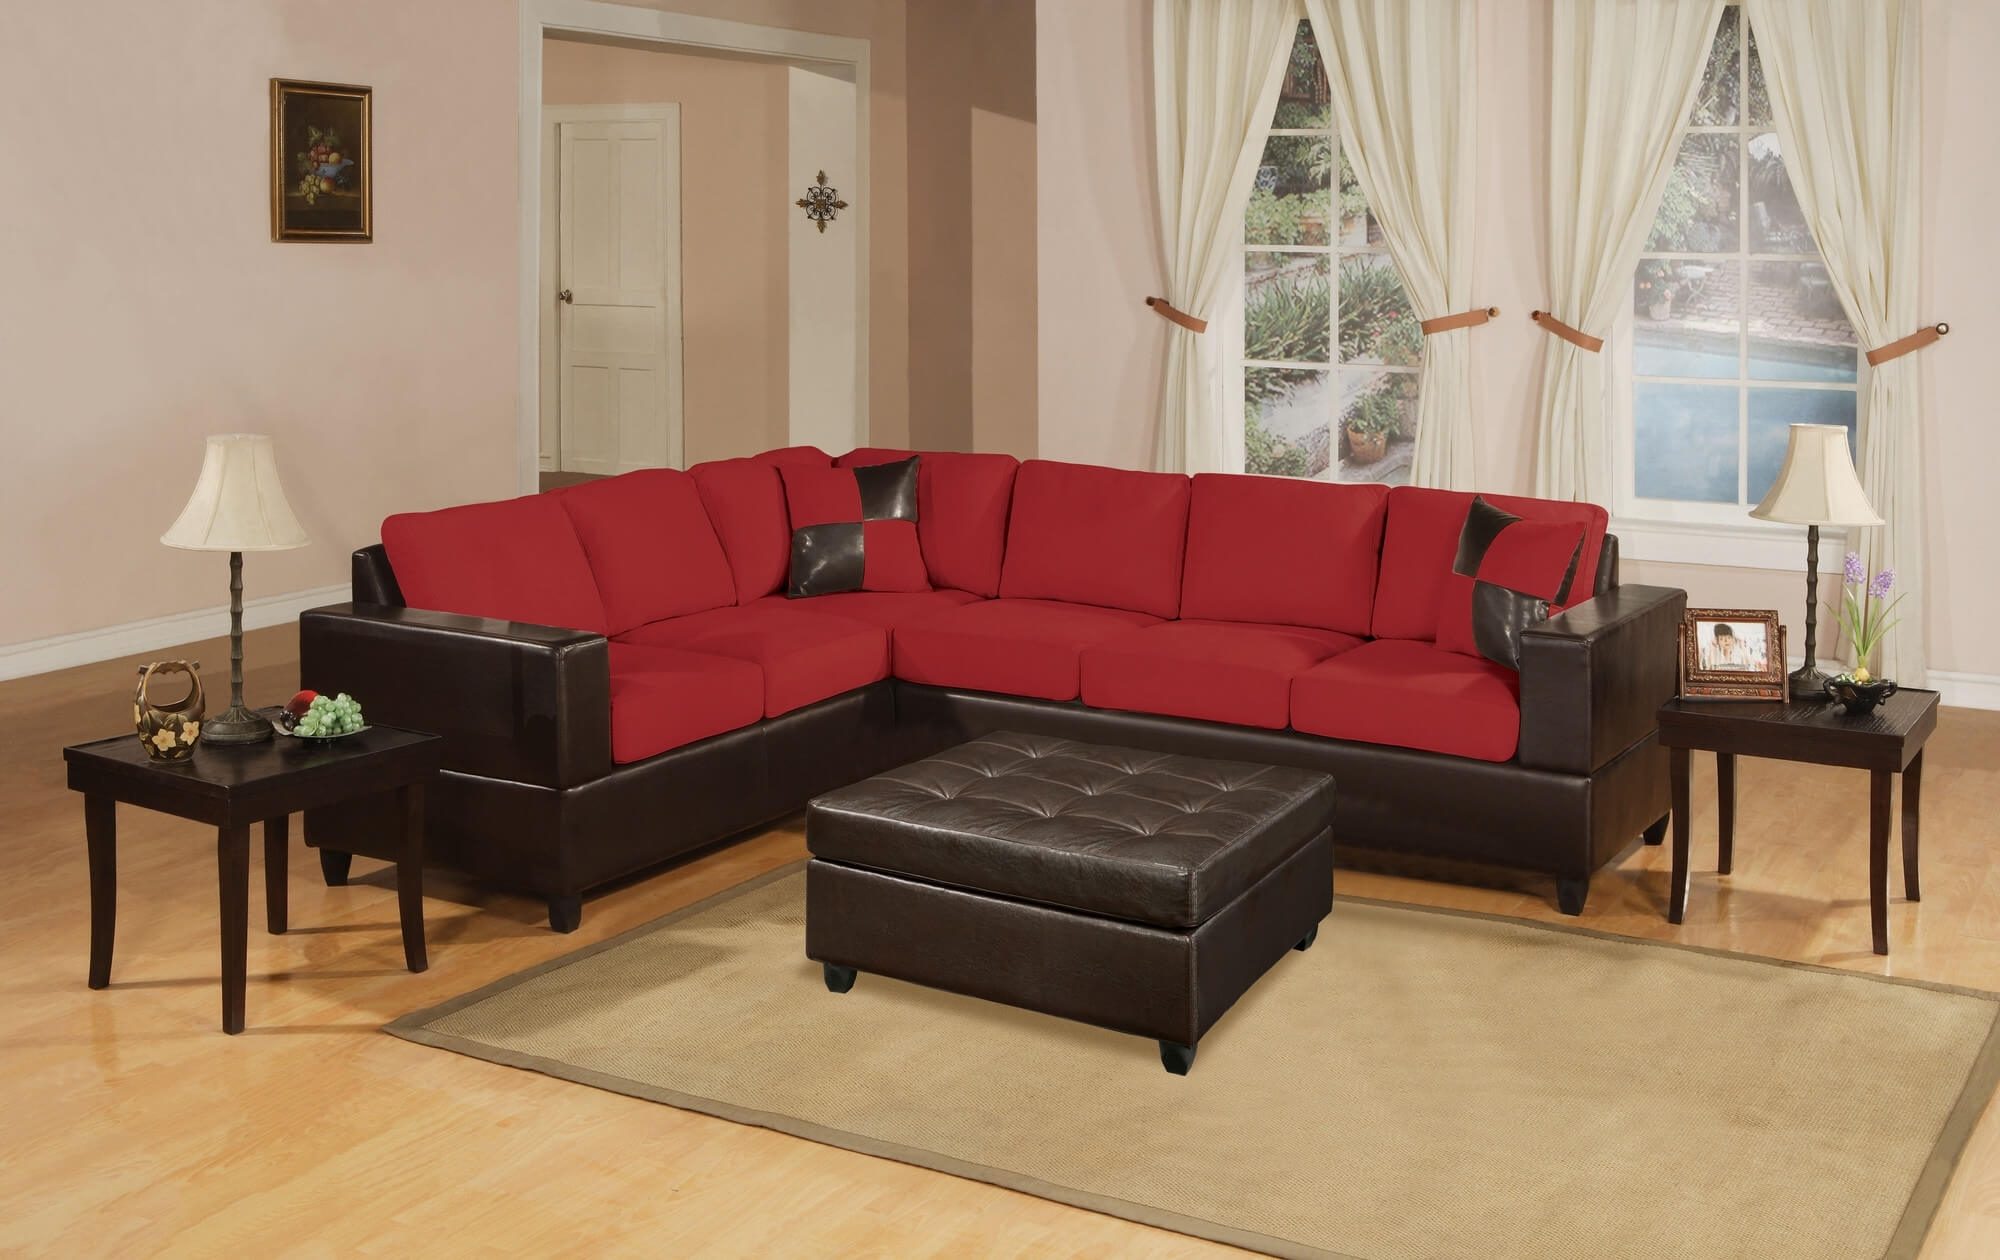 18 Stylish Modern Red Sectional Sofas Intended For Red Sectional Sofas (Image 2 of 10)